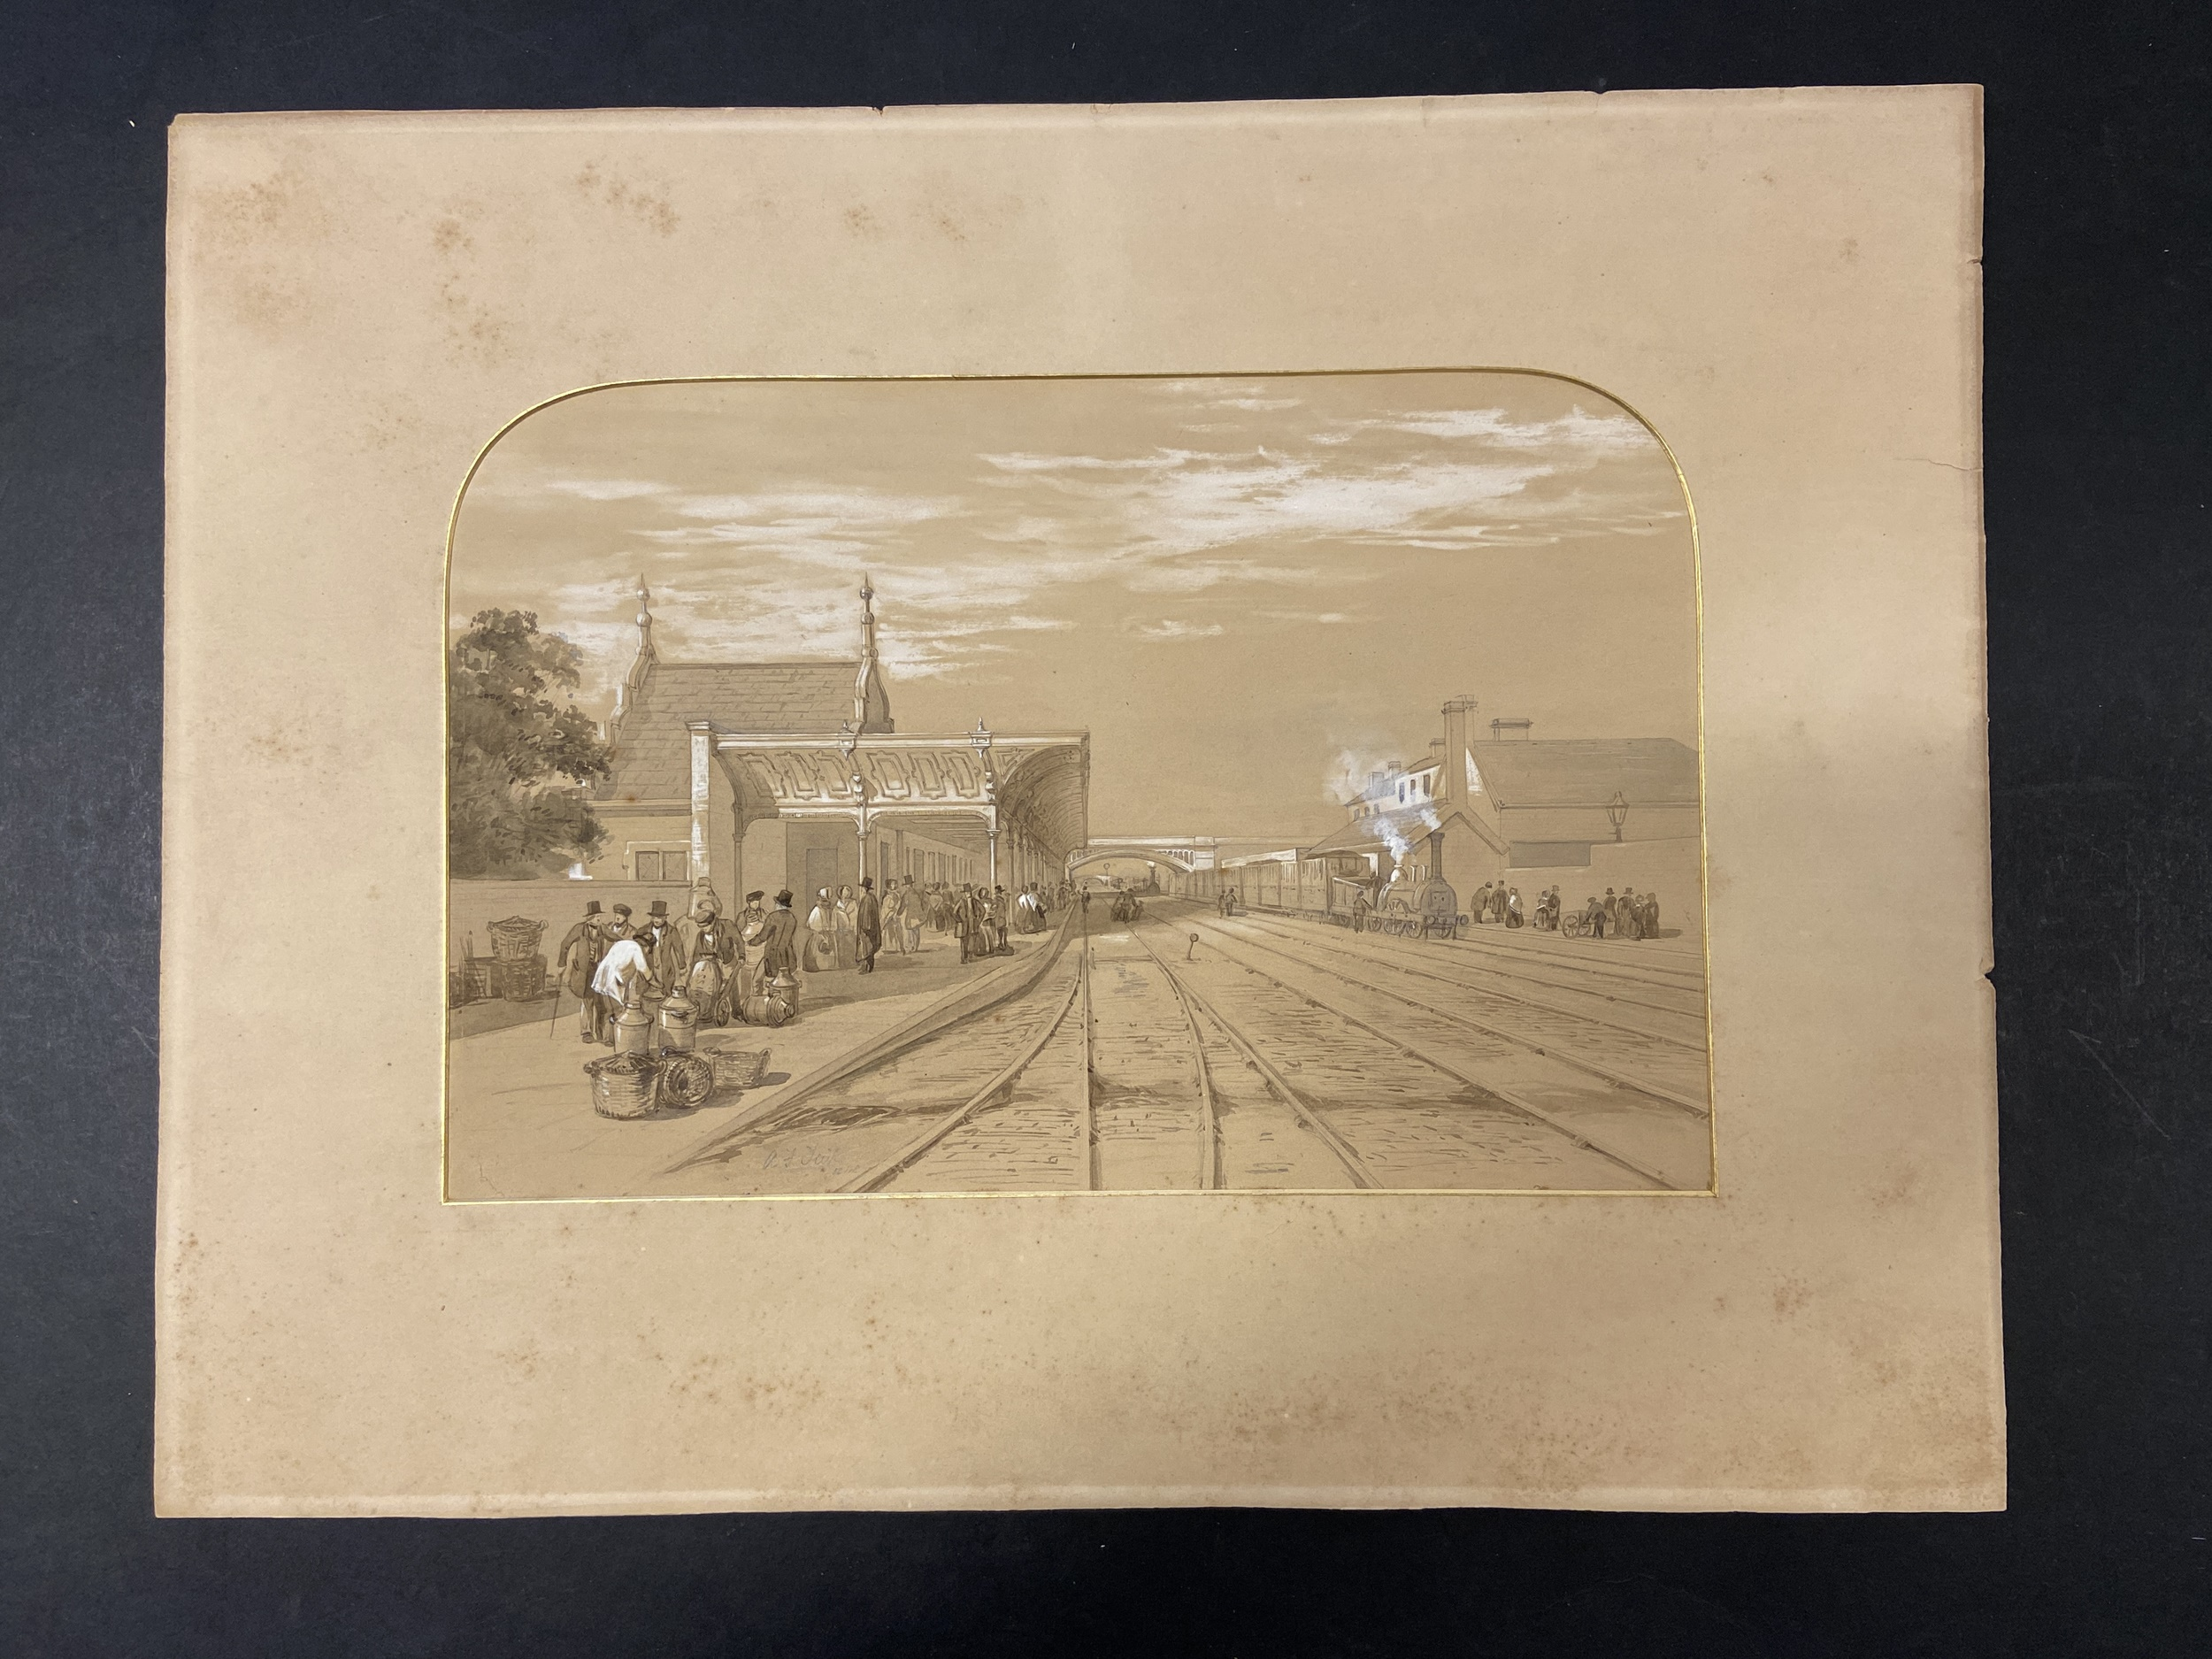 * Tait (Arthur Fitzwilliam). 7 watercolours from Views on the Manchester & Leeds Railway - Image 4 of 7